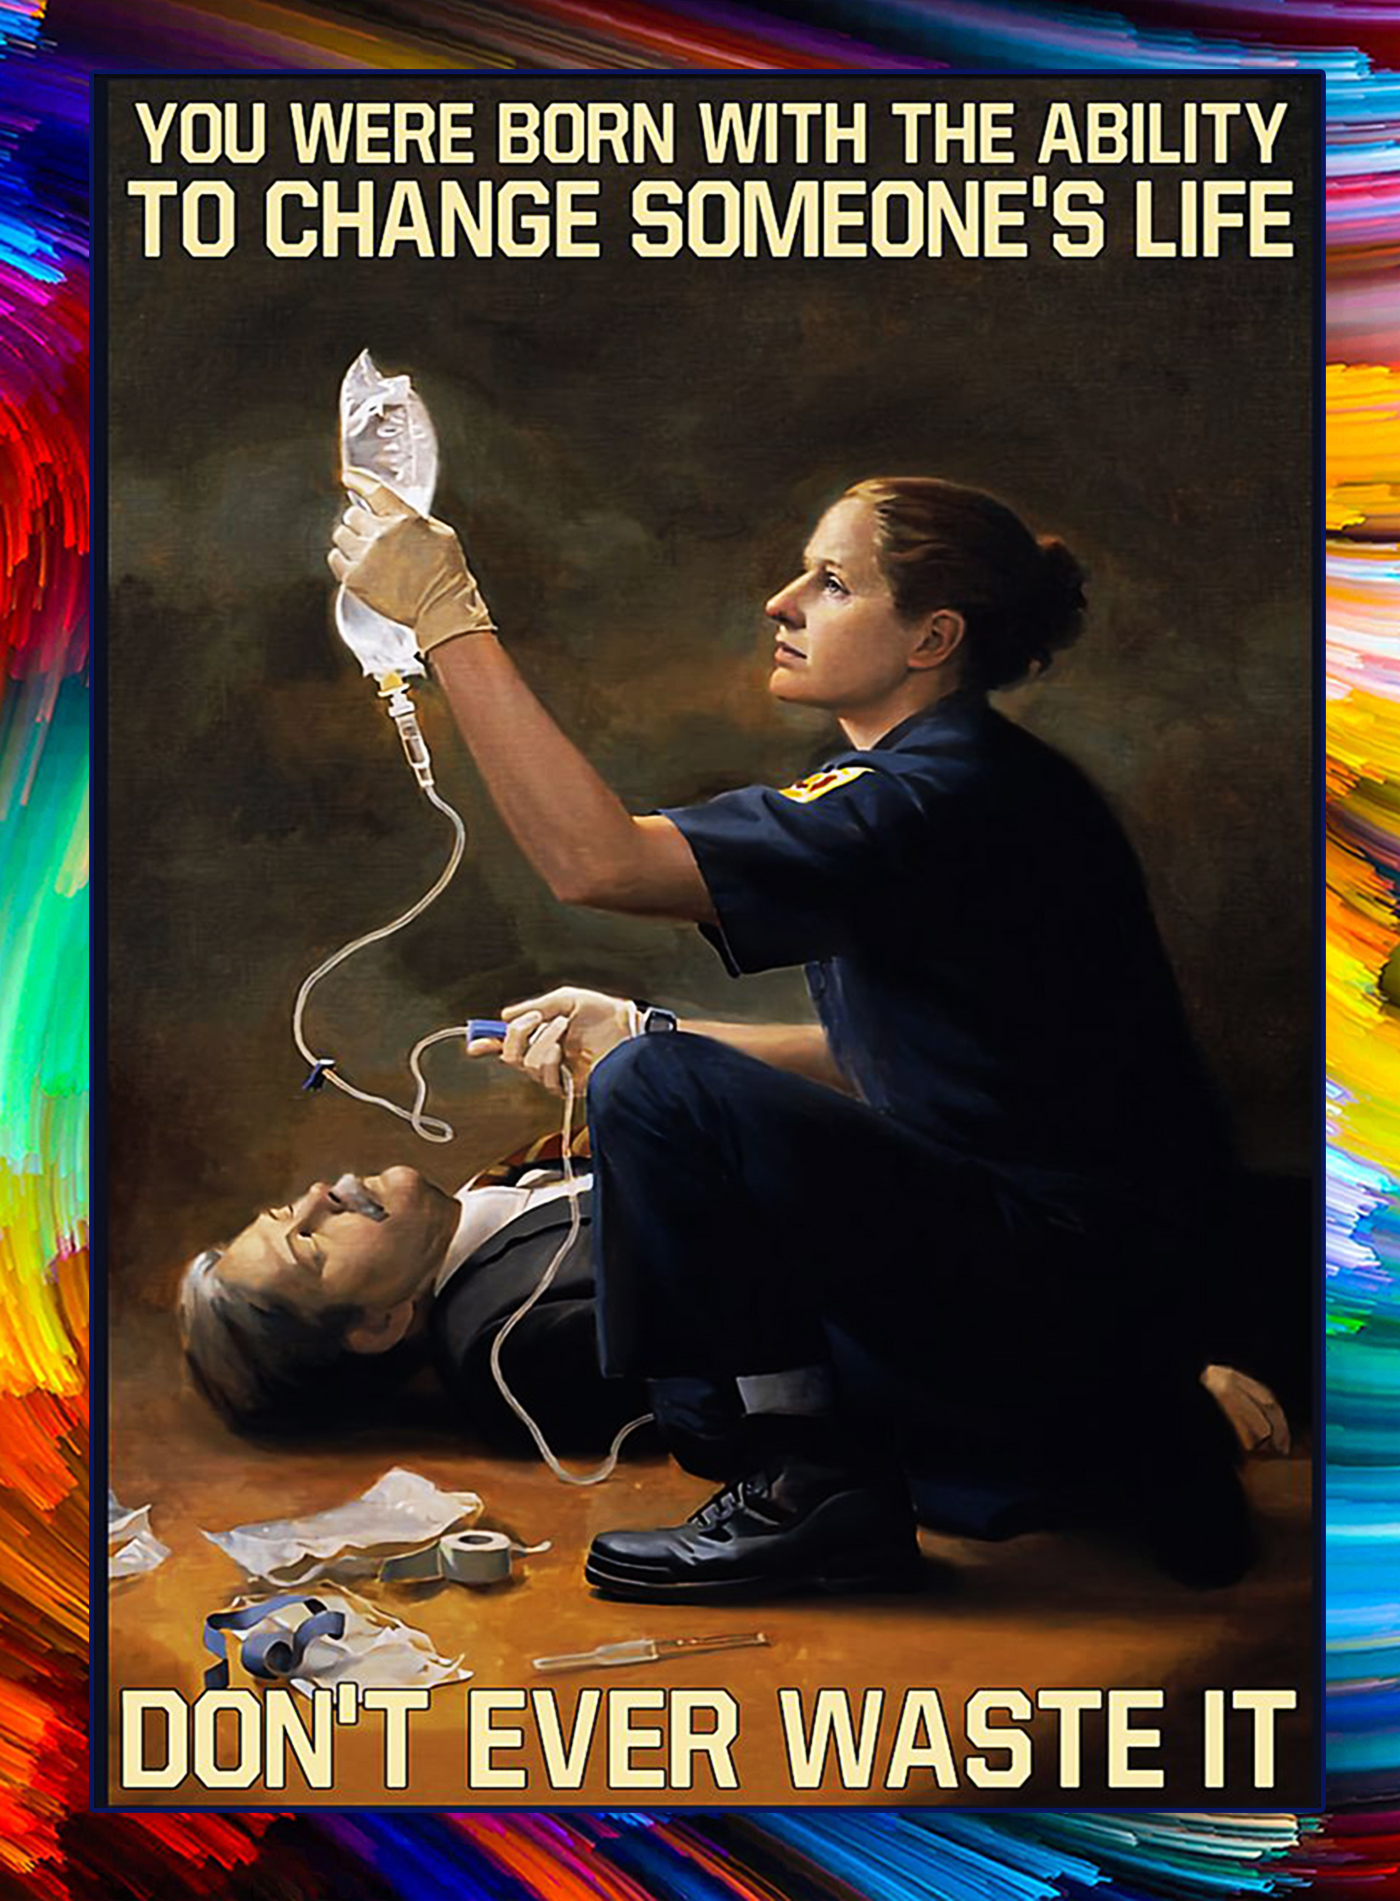 Paramedic You were born with the ability to change someone's life don't ever waste it poster - A1